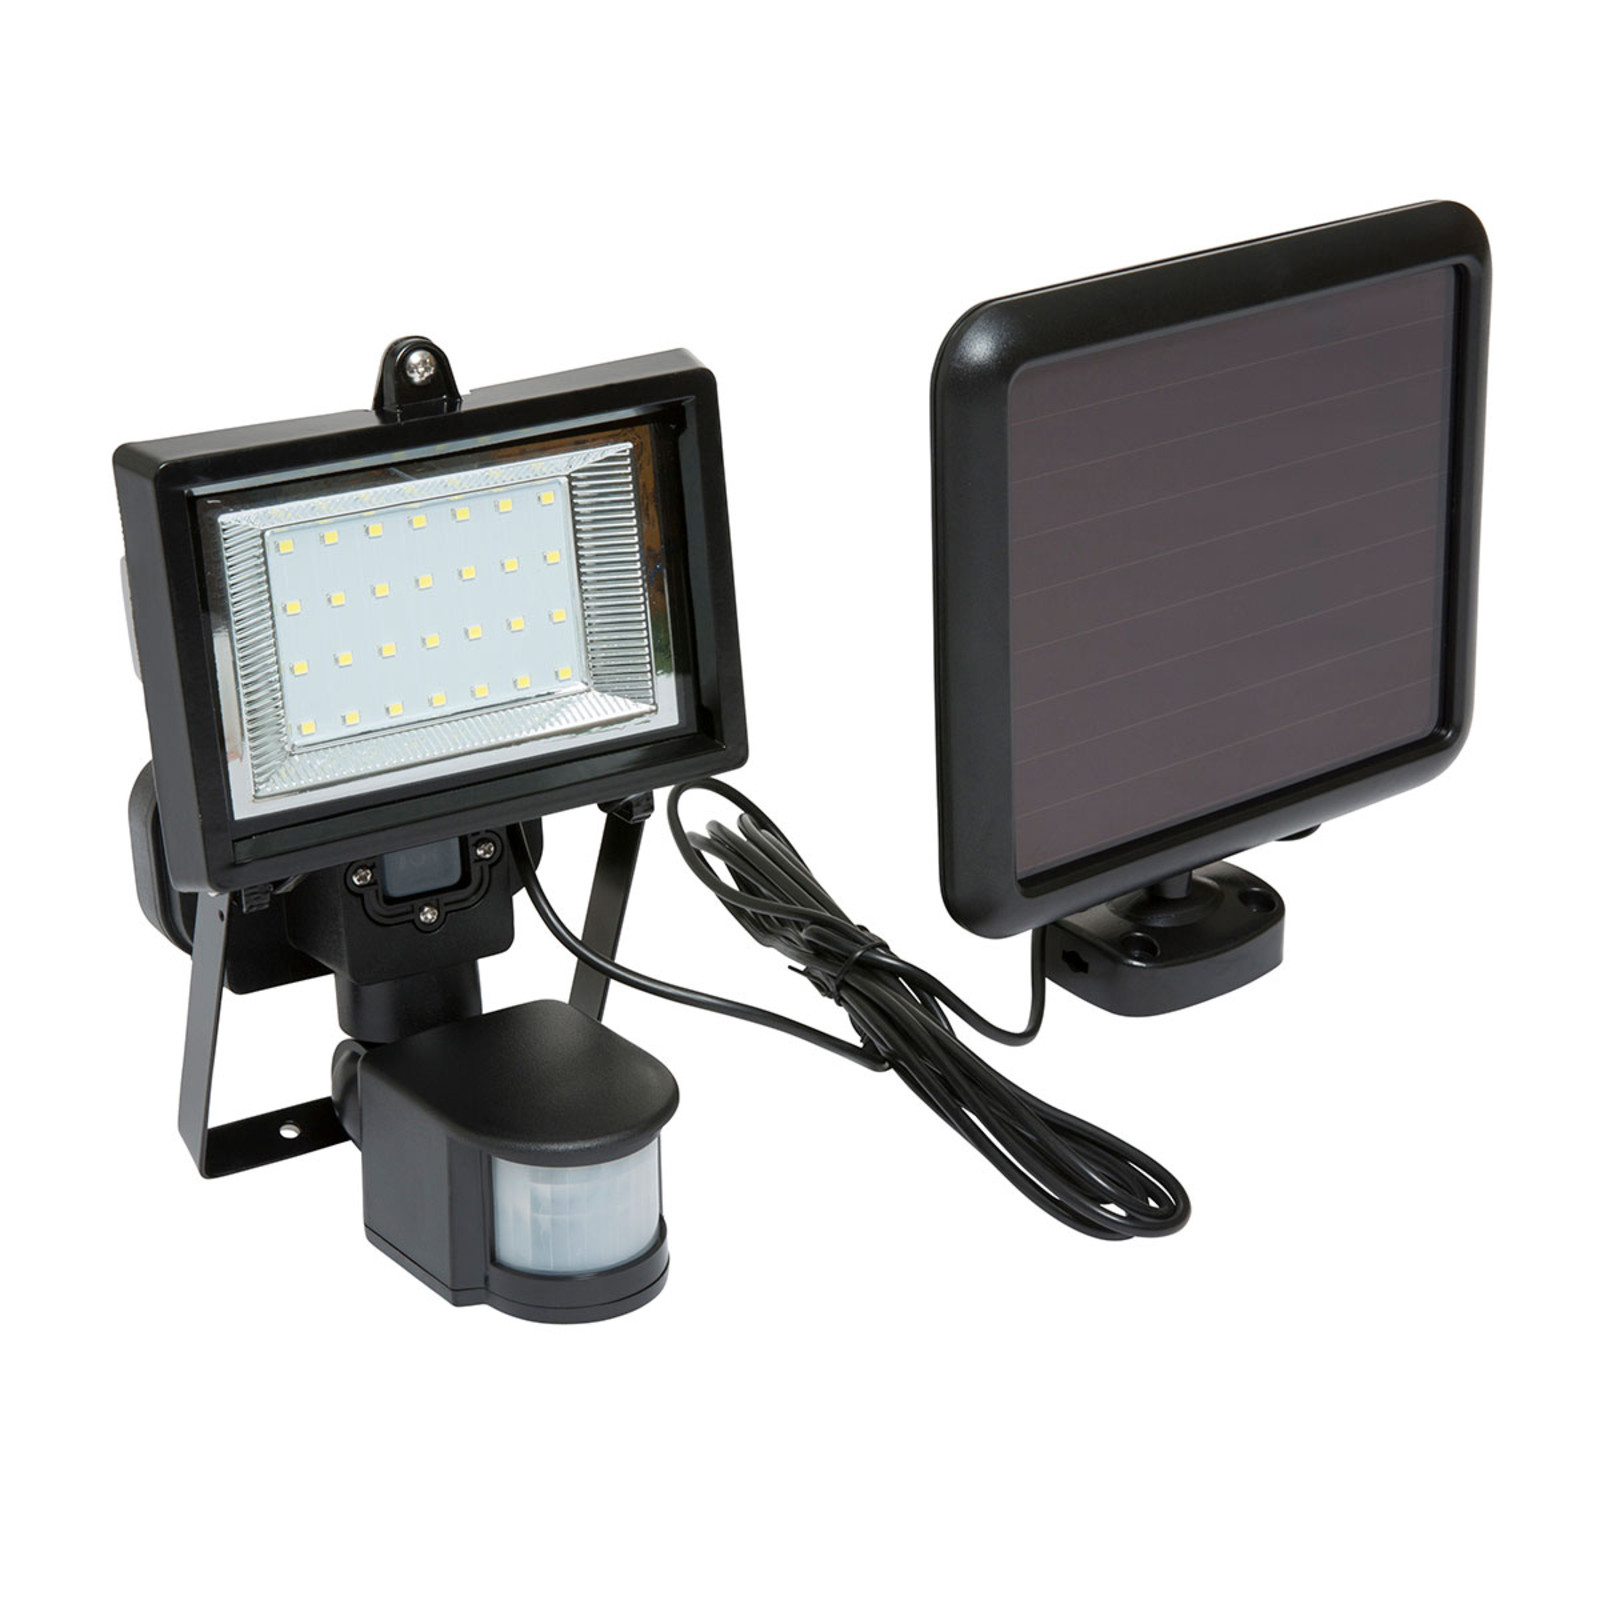 Wolf lighting 28 led solar powered pir security light ukhs click on the image to enlarge mozeypictures Image collections